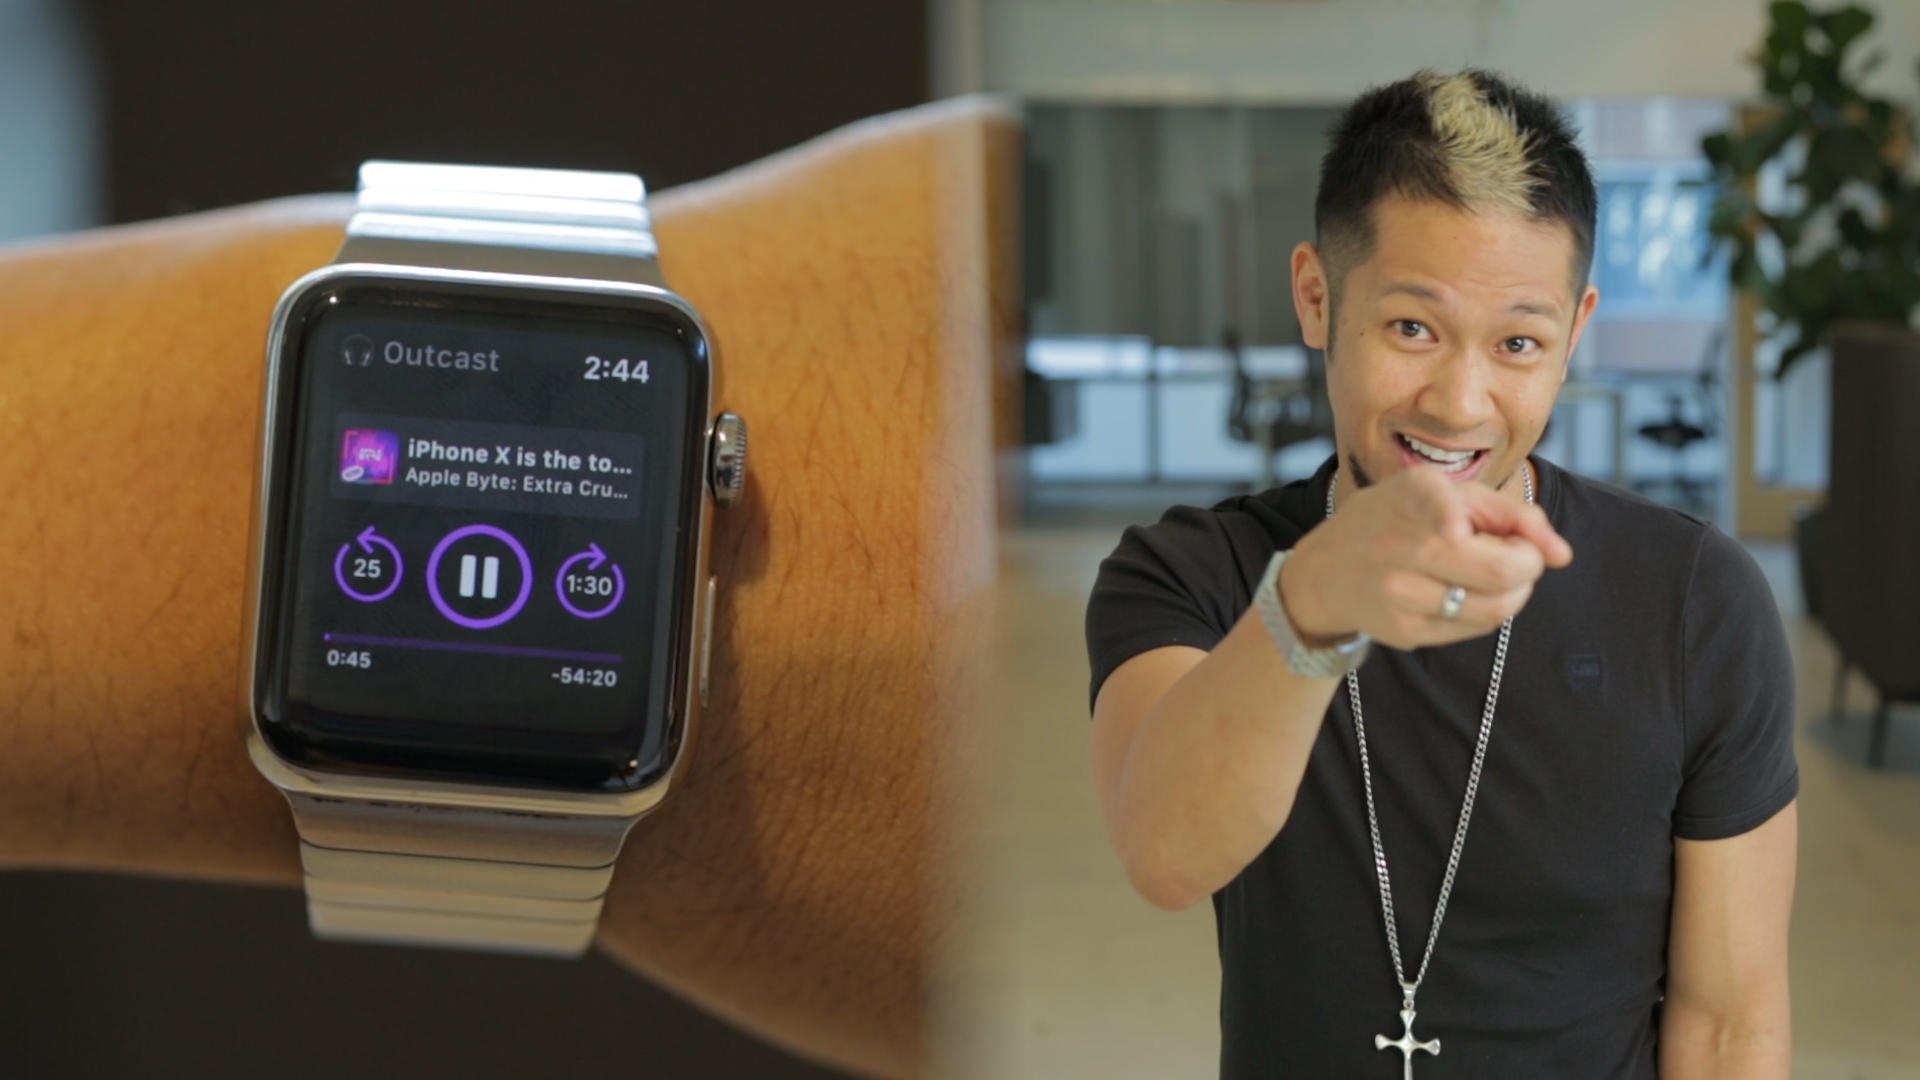 Video: Outcast is the best podcast app for the Apple Watch